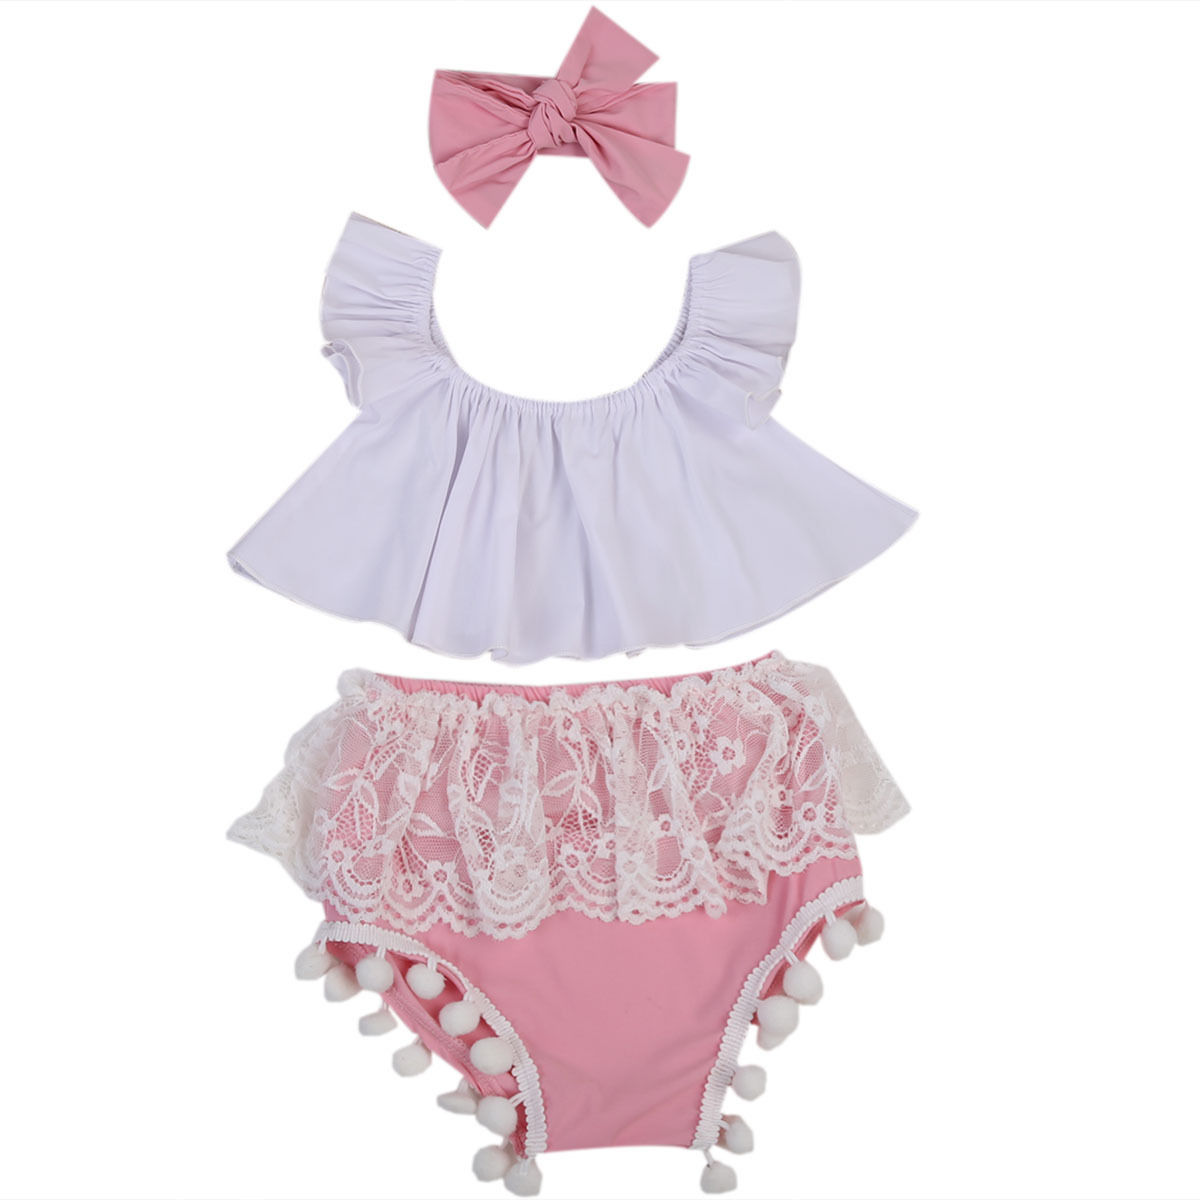 Summer Newborn Baby Girls Clothing Set Outfits Clothes Ruffle Tops+Pink Lace Shorts Headband 3PCS Cute Baby Girls Clothes Set summer baby girl floral outfits clothes newborn kids girls princess lace rompers shorts sunsuit clothes set long sleeve clothing